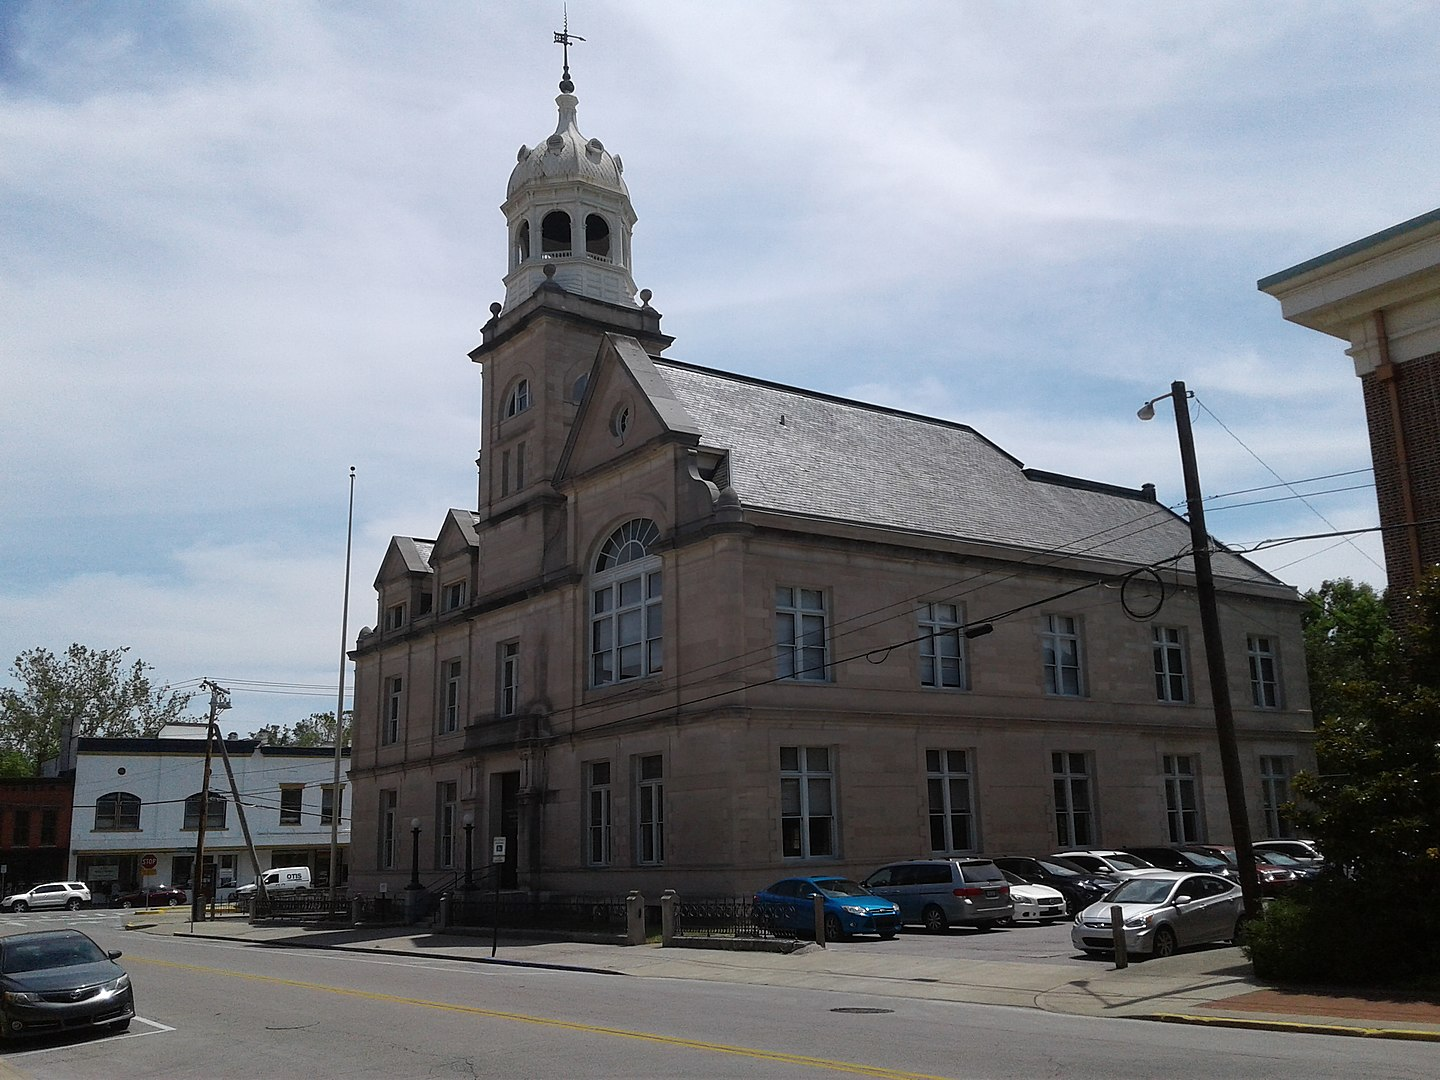 Old Federal Building, or Old United States Courthouse and Post Office, in Frankfort, Kentucky.